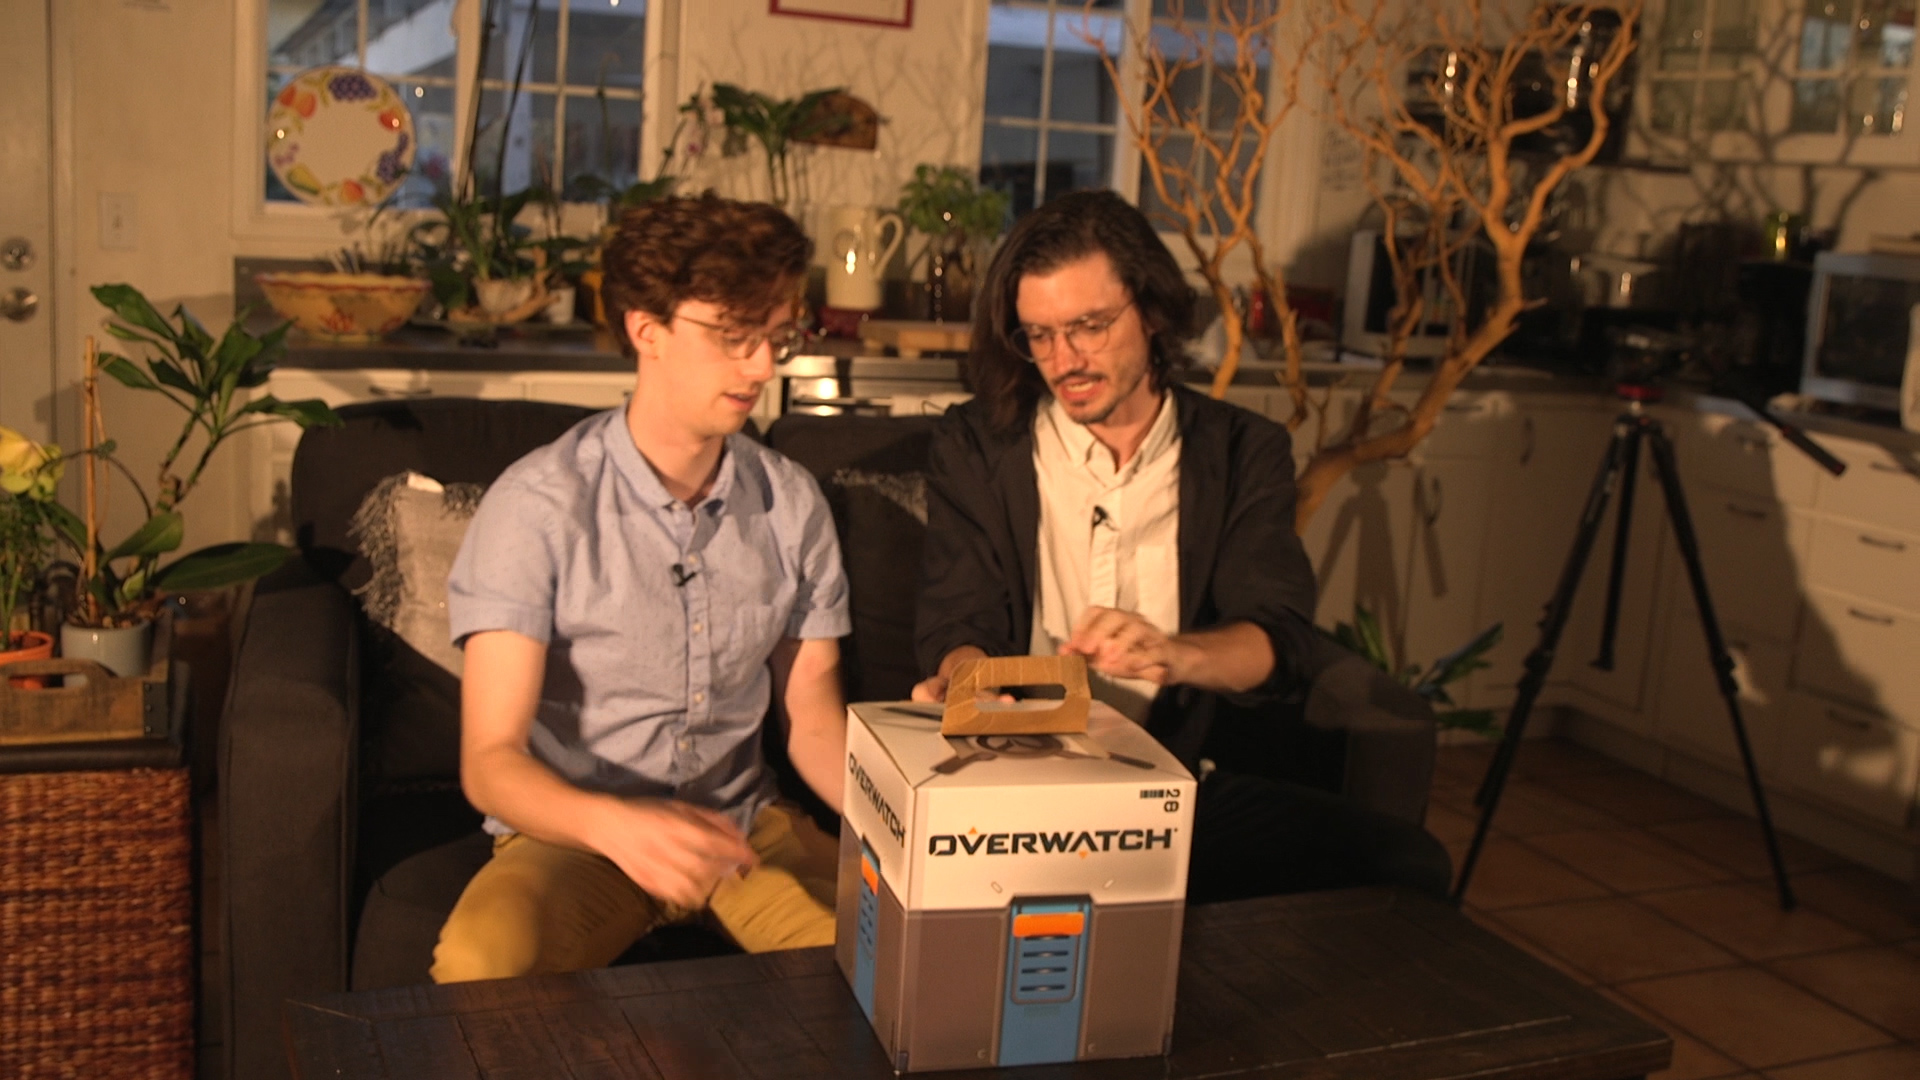 We Investigated The Physical Loot Boxes At E3